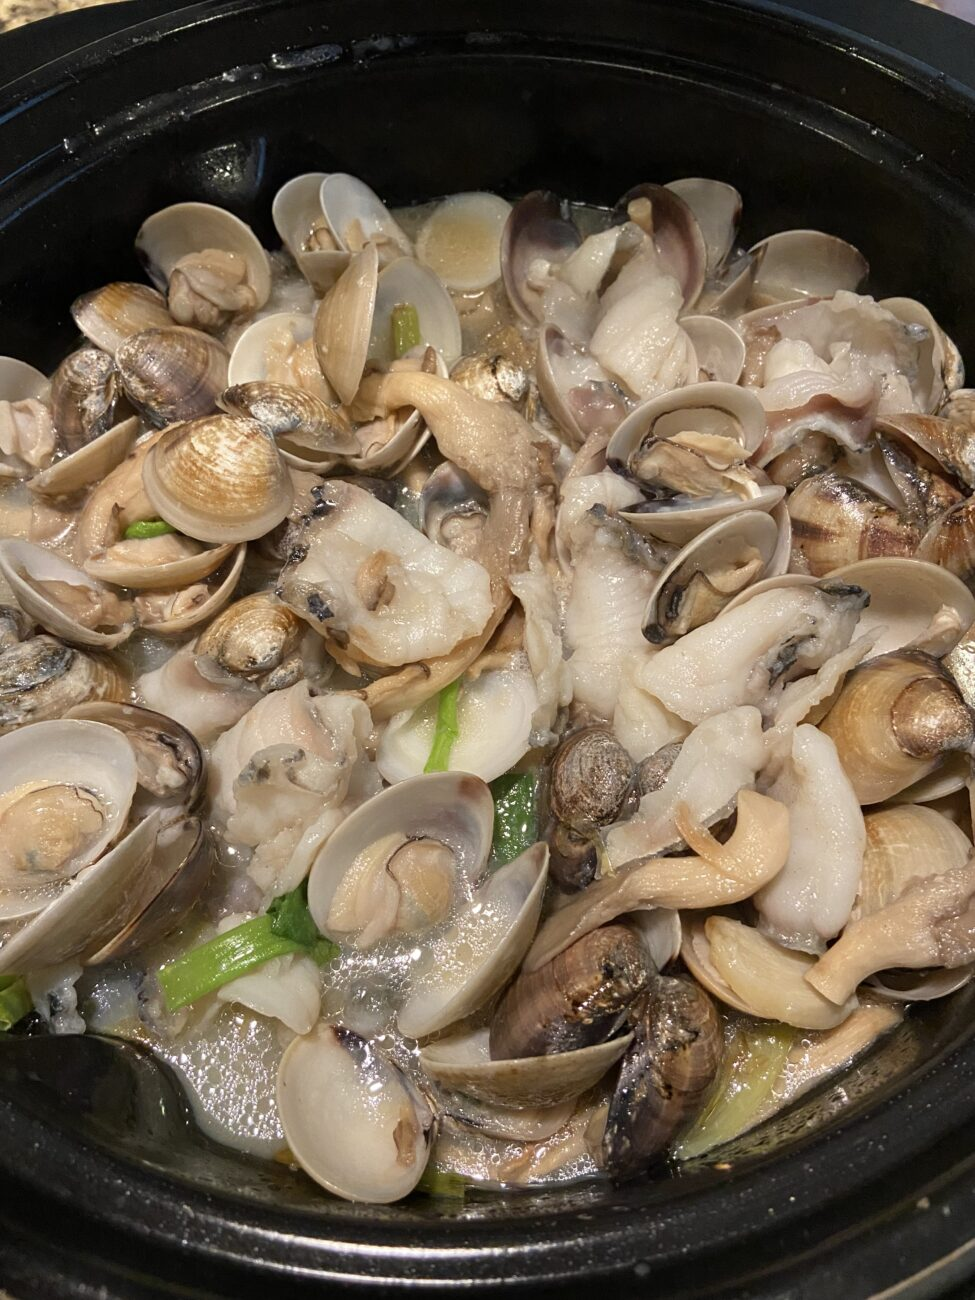 Ginger Onion Sauce with Oyster Mushroom, Clams and Sliced Fish (Umami)